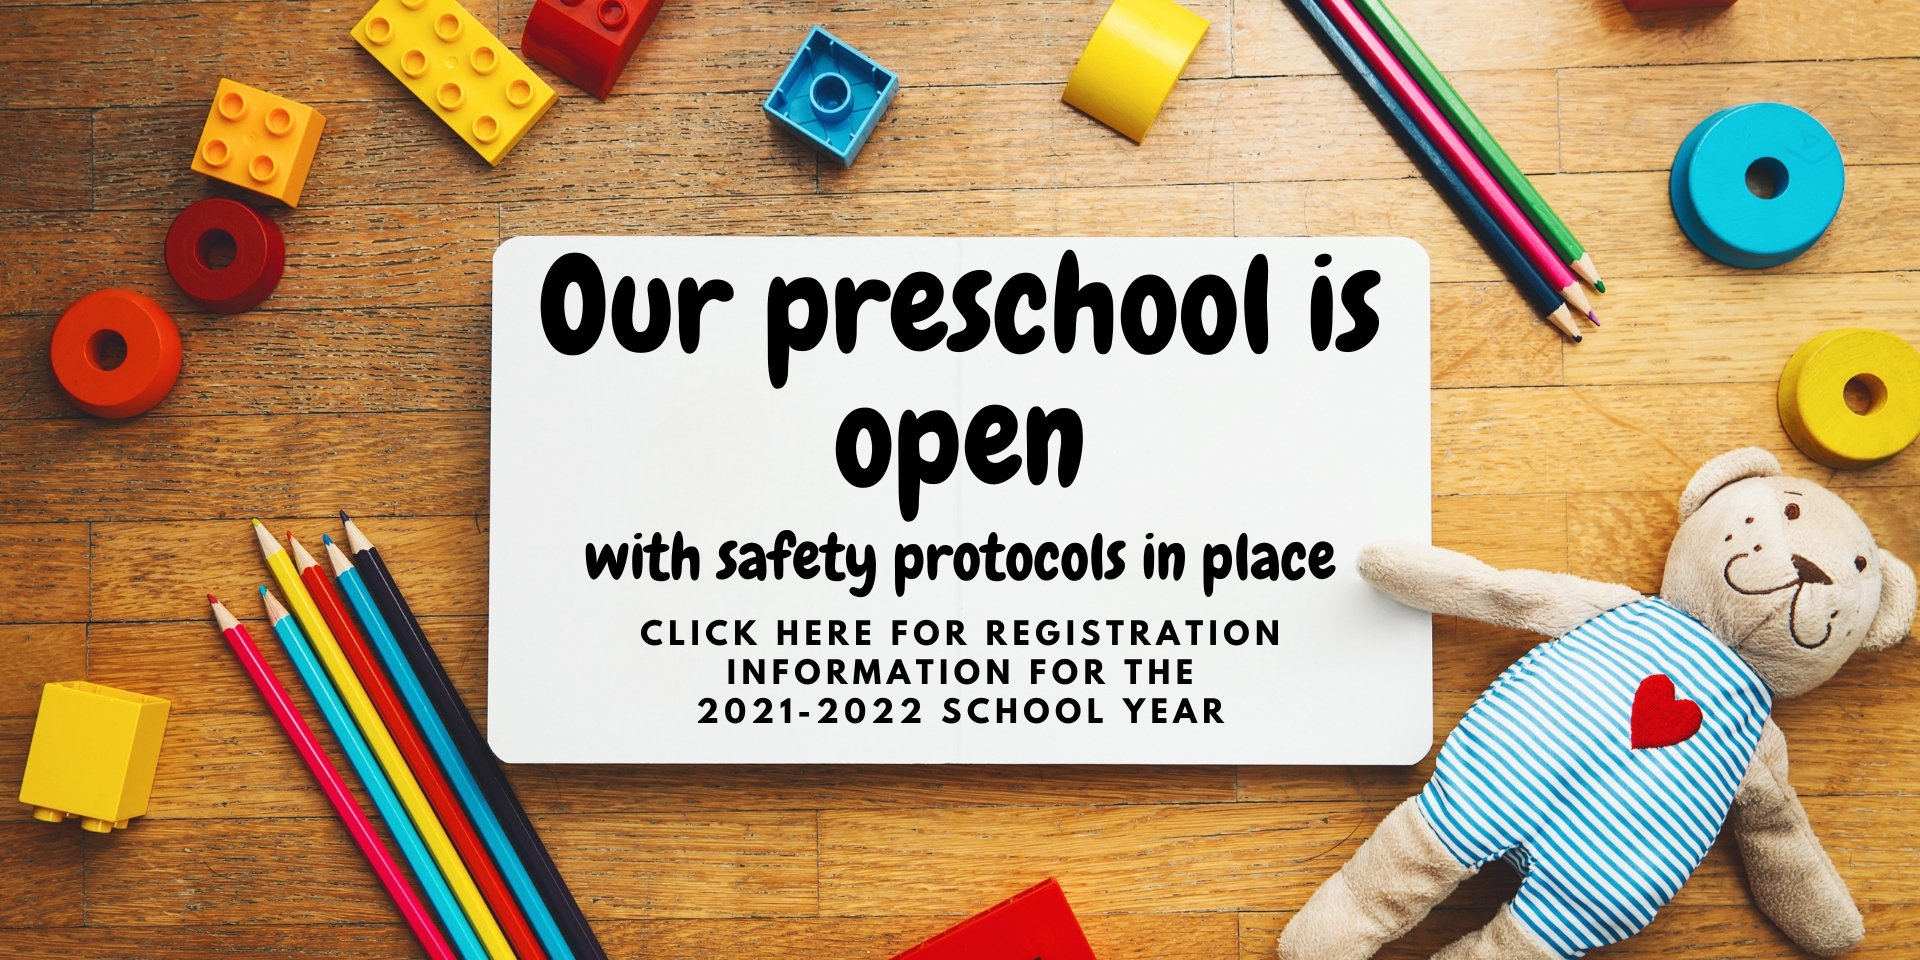 Our preschool is open! (1).jpg